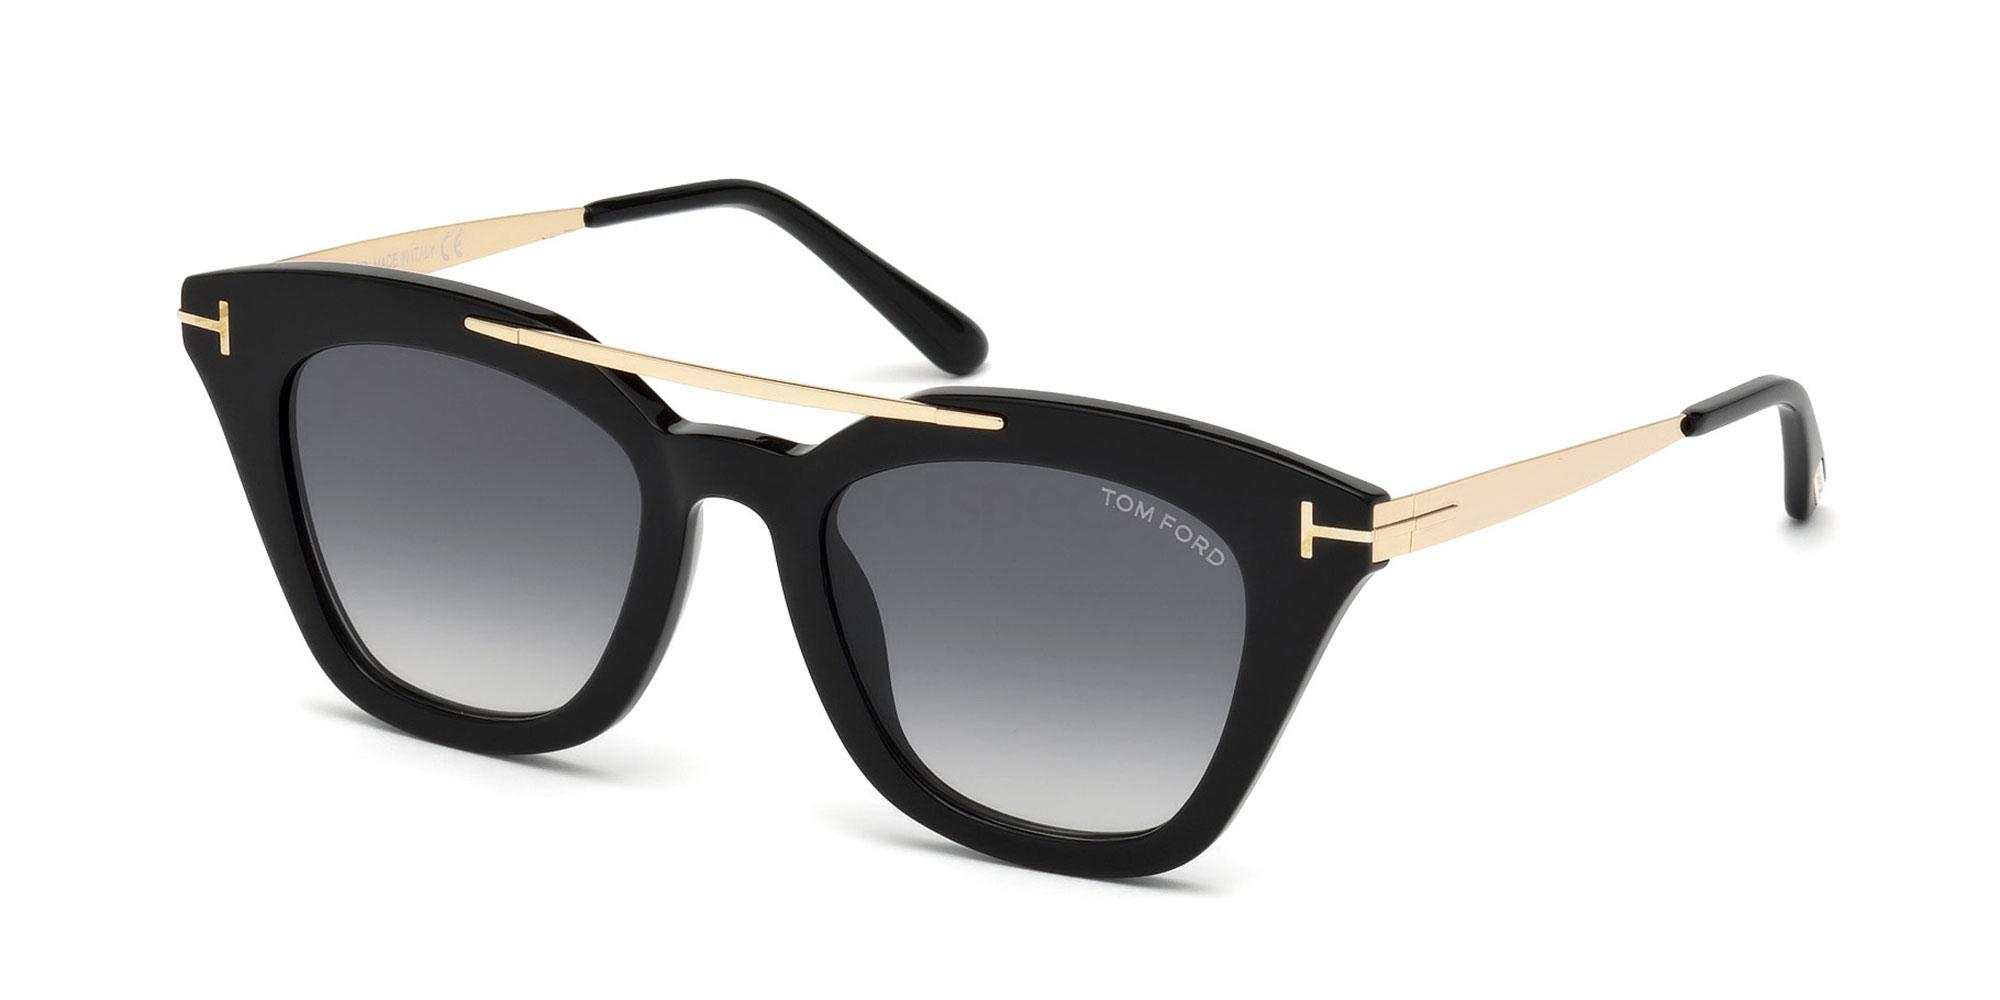 01B FT0575 Sunglasses, Tom Ford